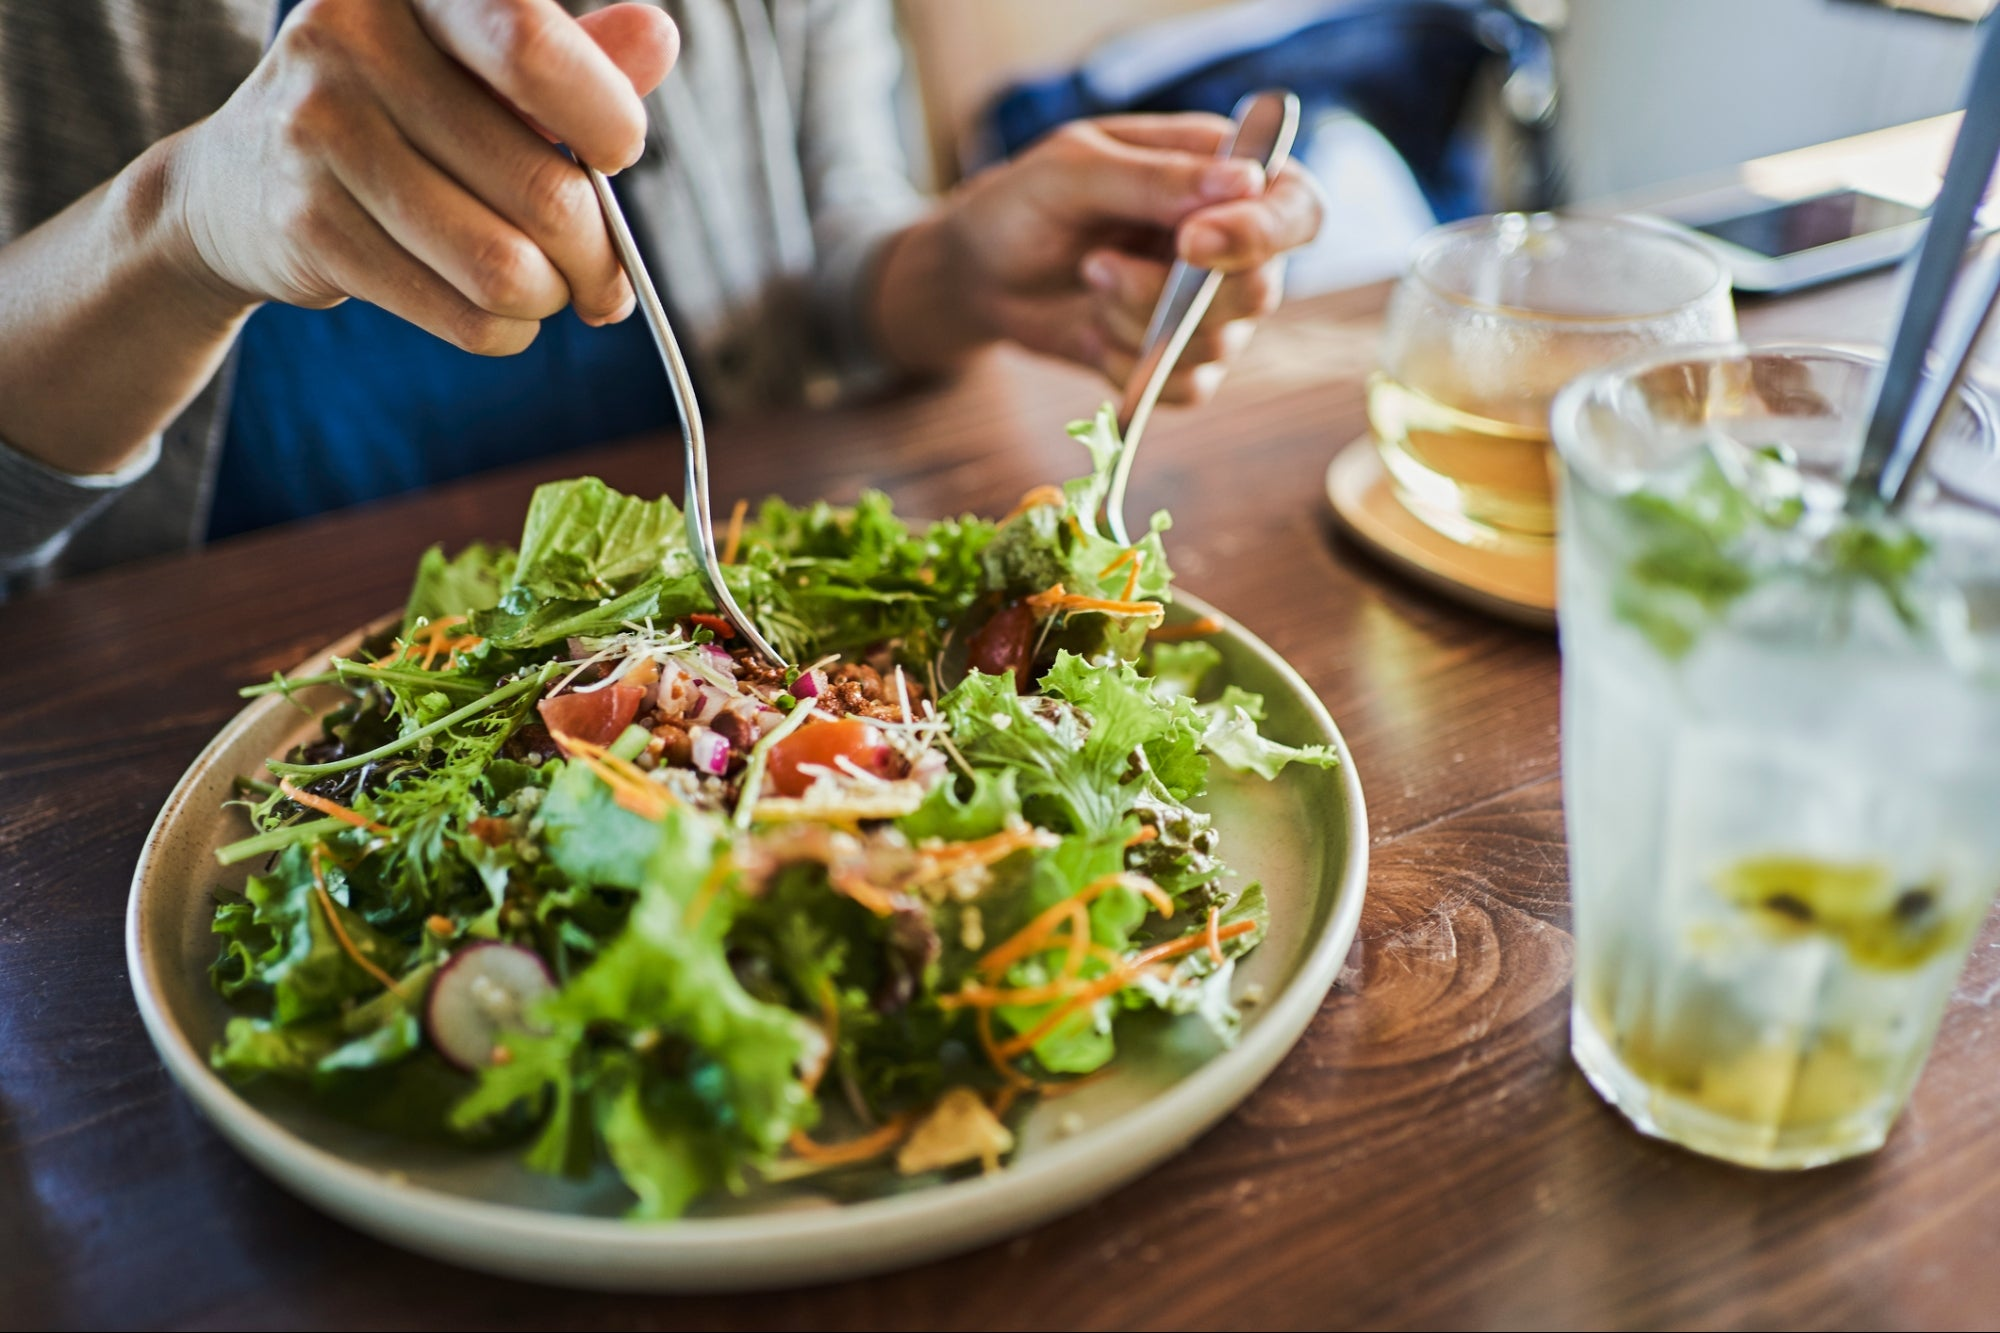 Fueling Your Body is Key to Fueling Your Business